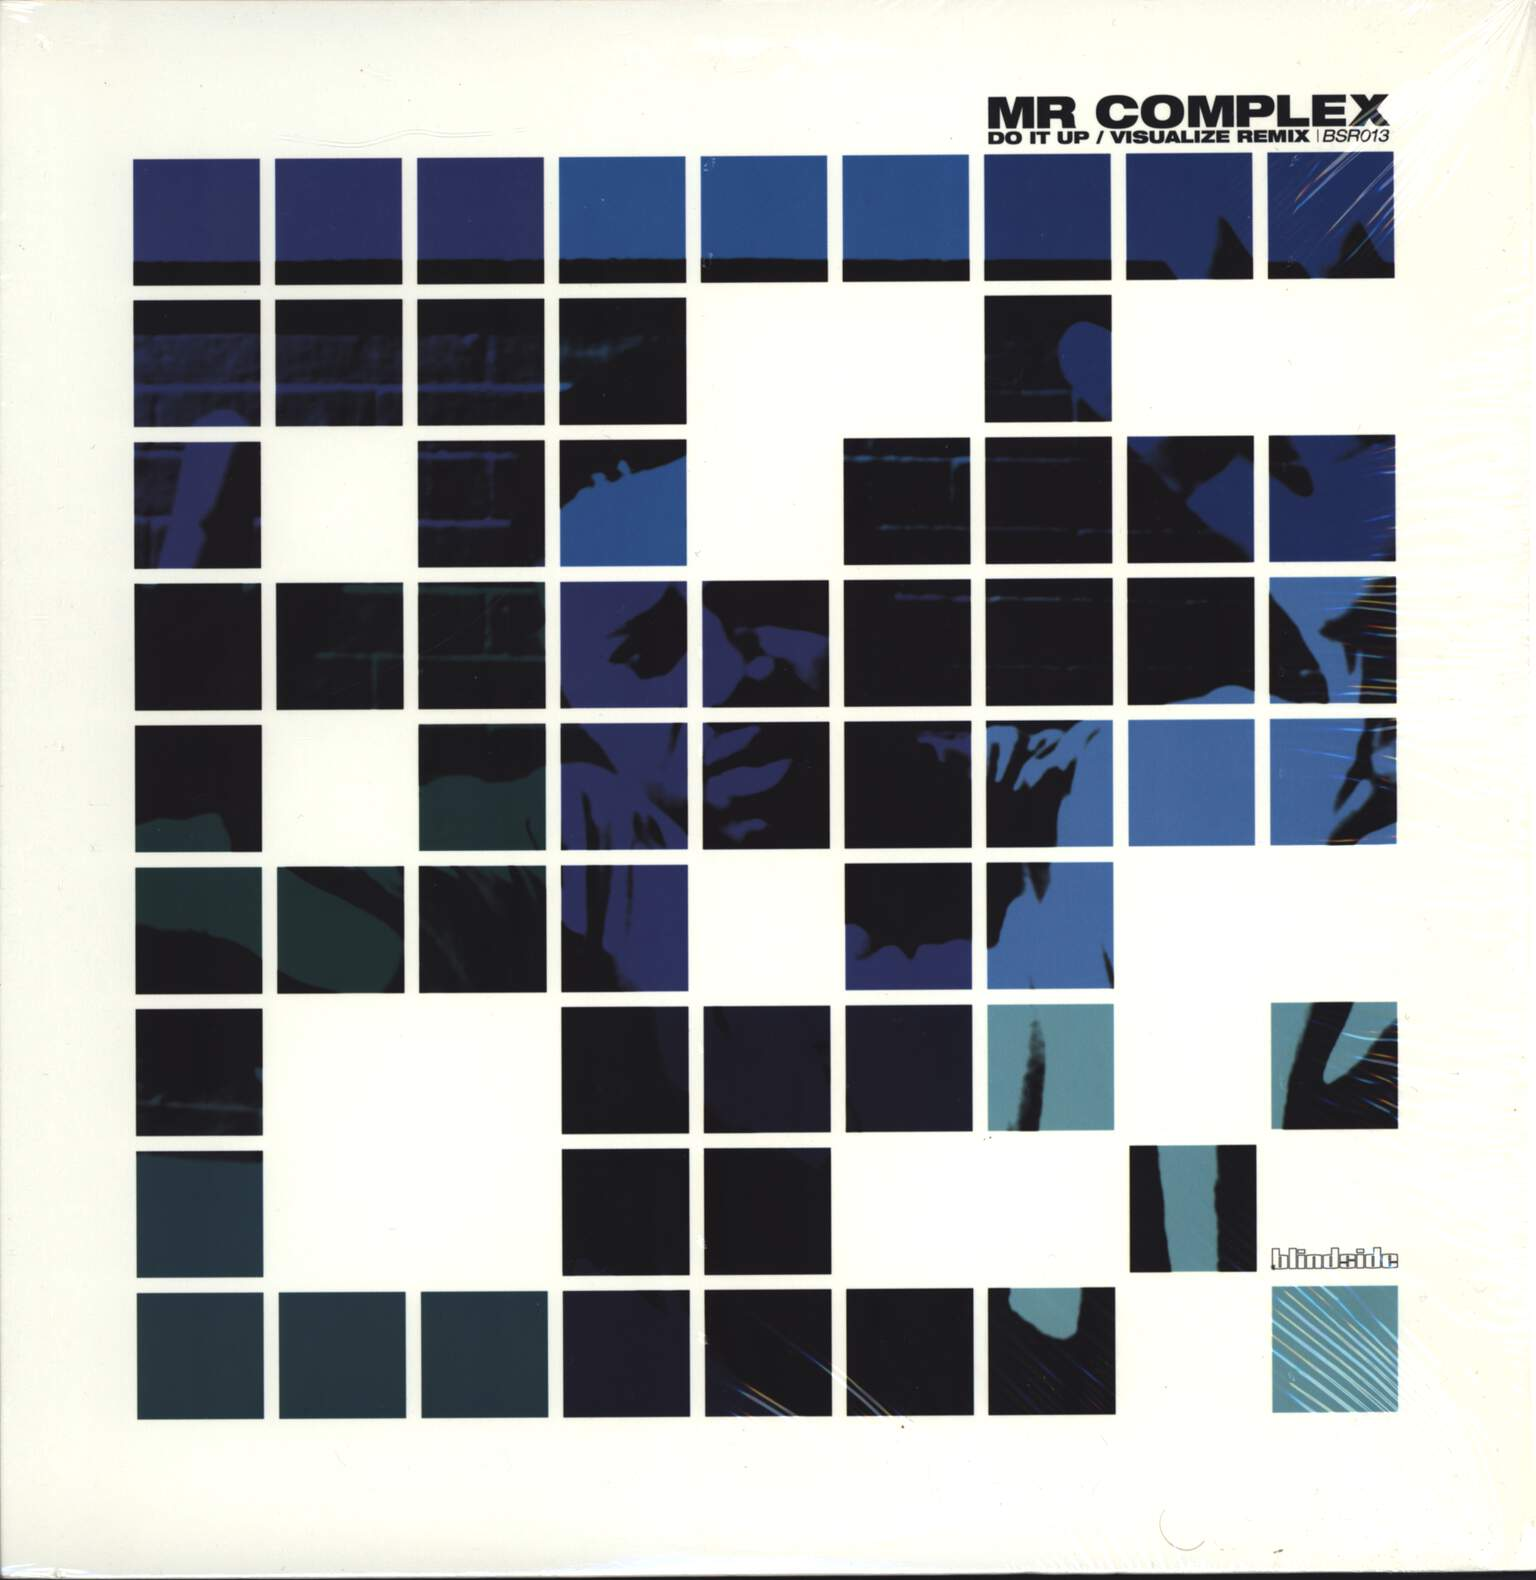 "Mr Complex: Do It Up / Visualize (Remix), 12"" Maxi Single (Vinyl)"